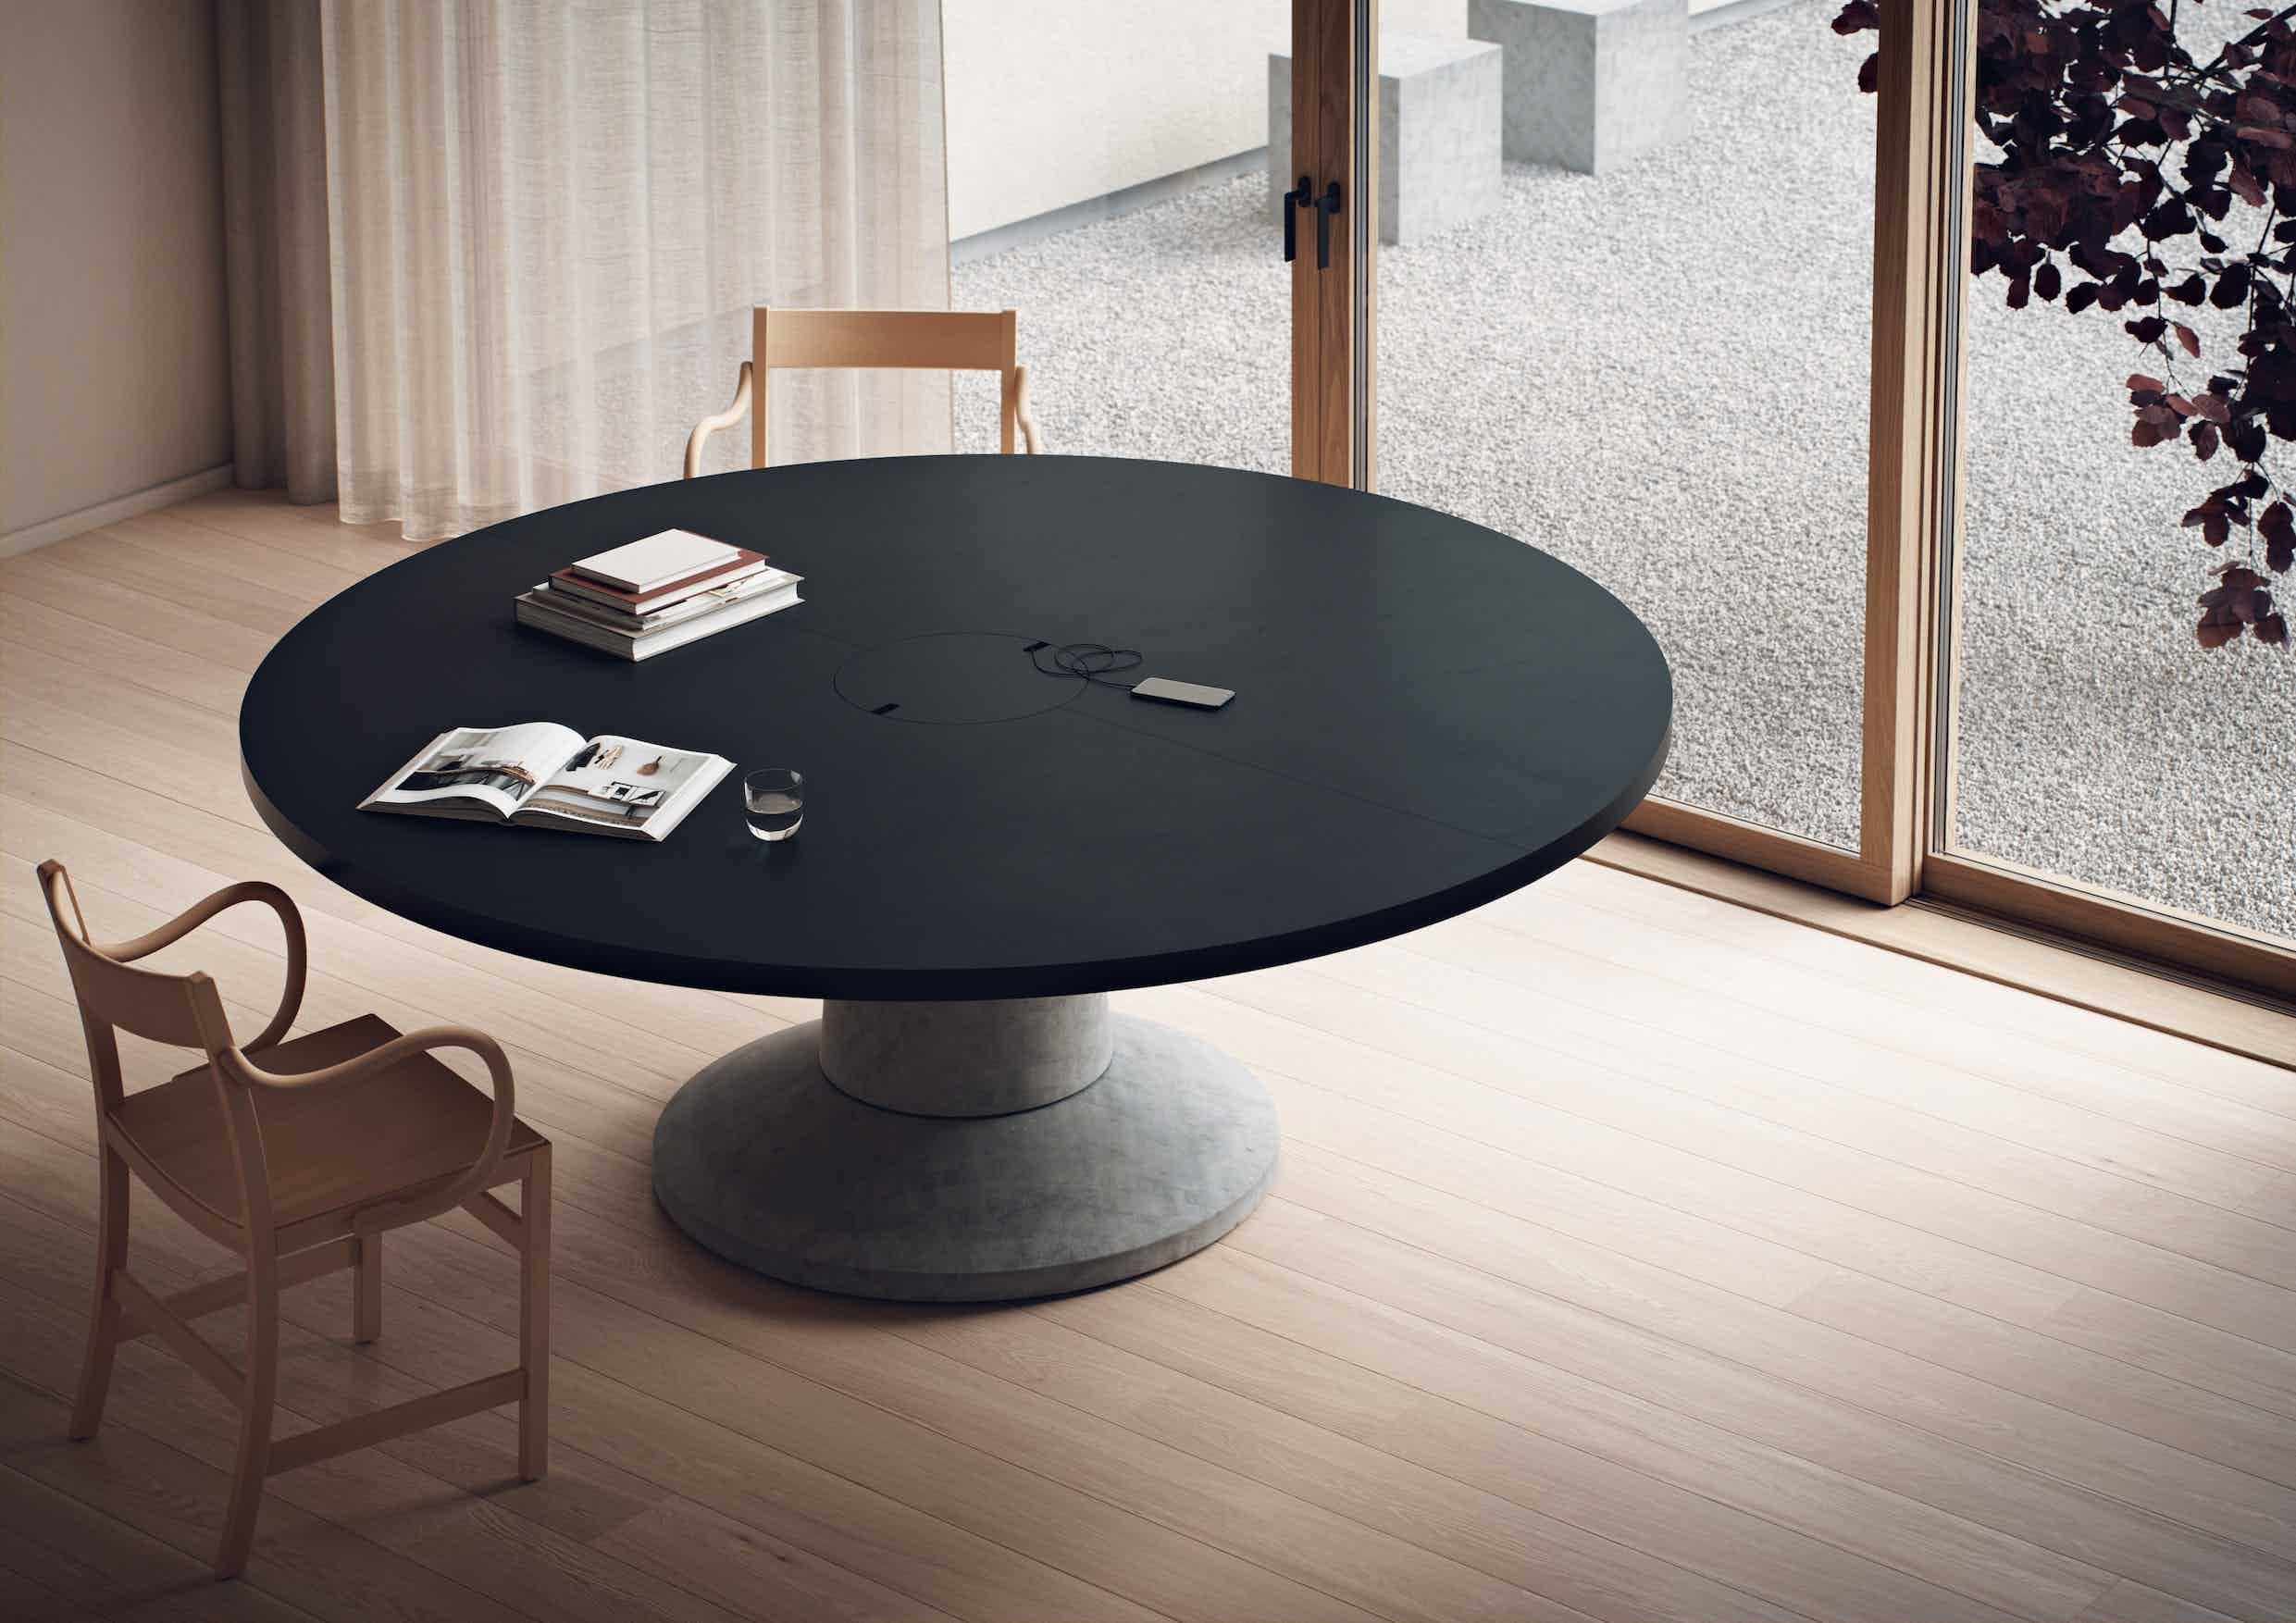 Massproductions colossus table round black insitu haute living